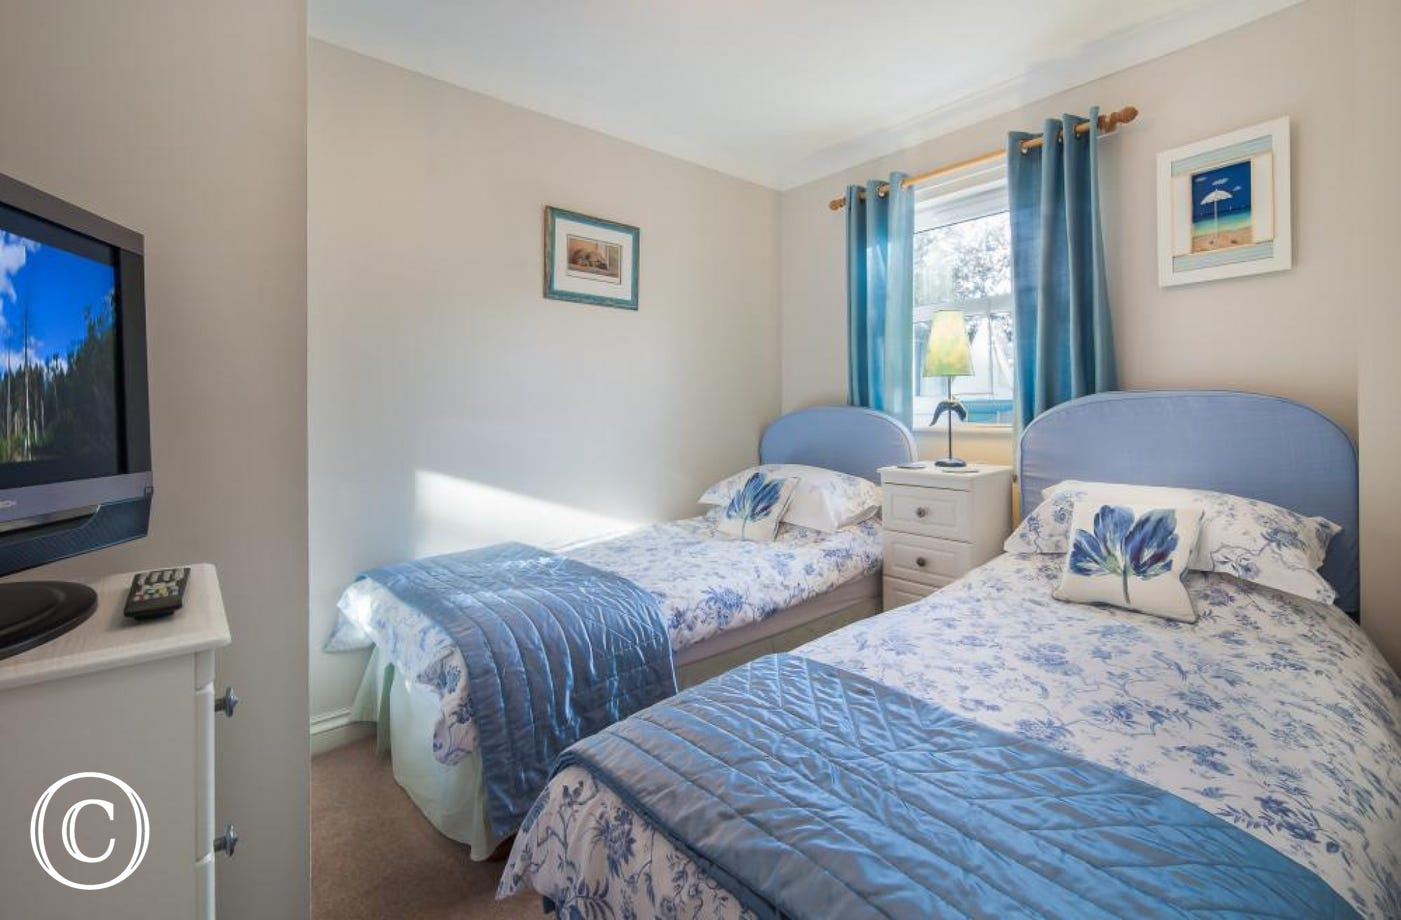 Comfortable Twin Bedroom for Children or Friends, complete with TV. A Perfect Family Beach Holiday in Torquay